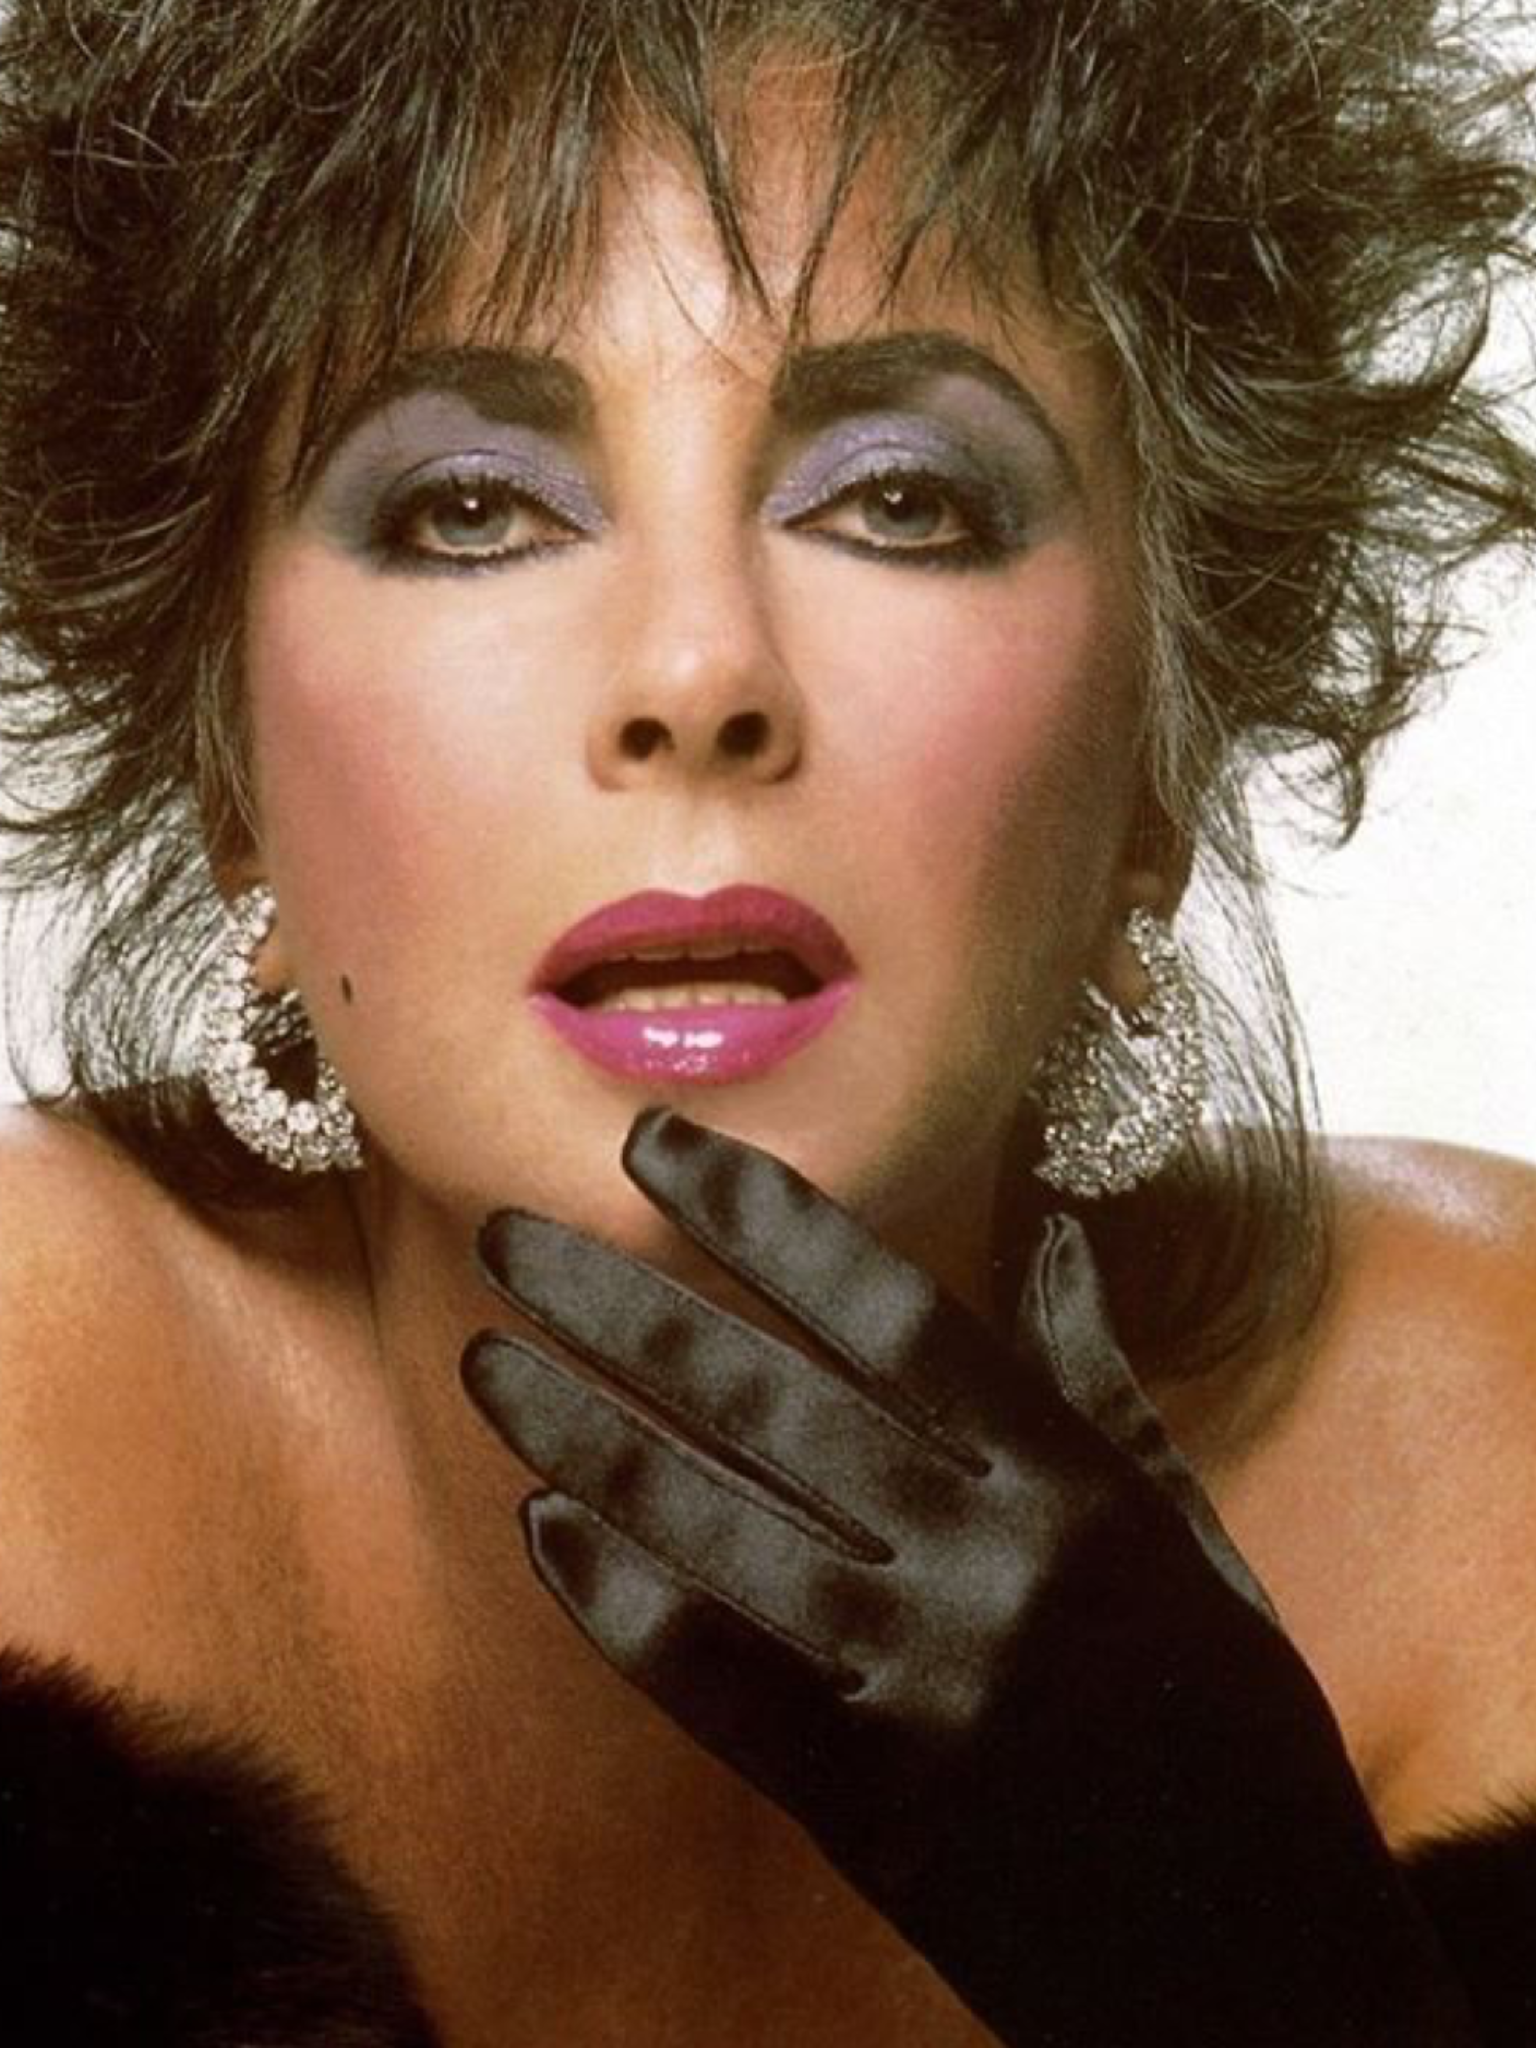 Pin By Jale Cosar On 1988 Elizabeth Taylor Elizabeth Taylor Golden Age Of Hollywood Most Beautiful Faces